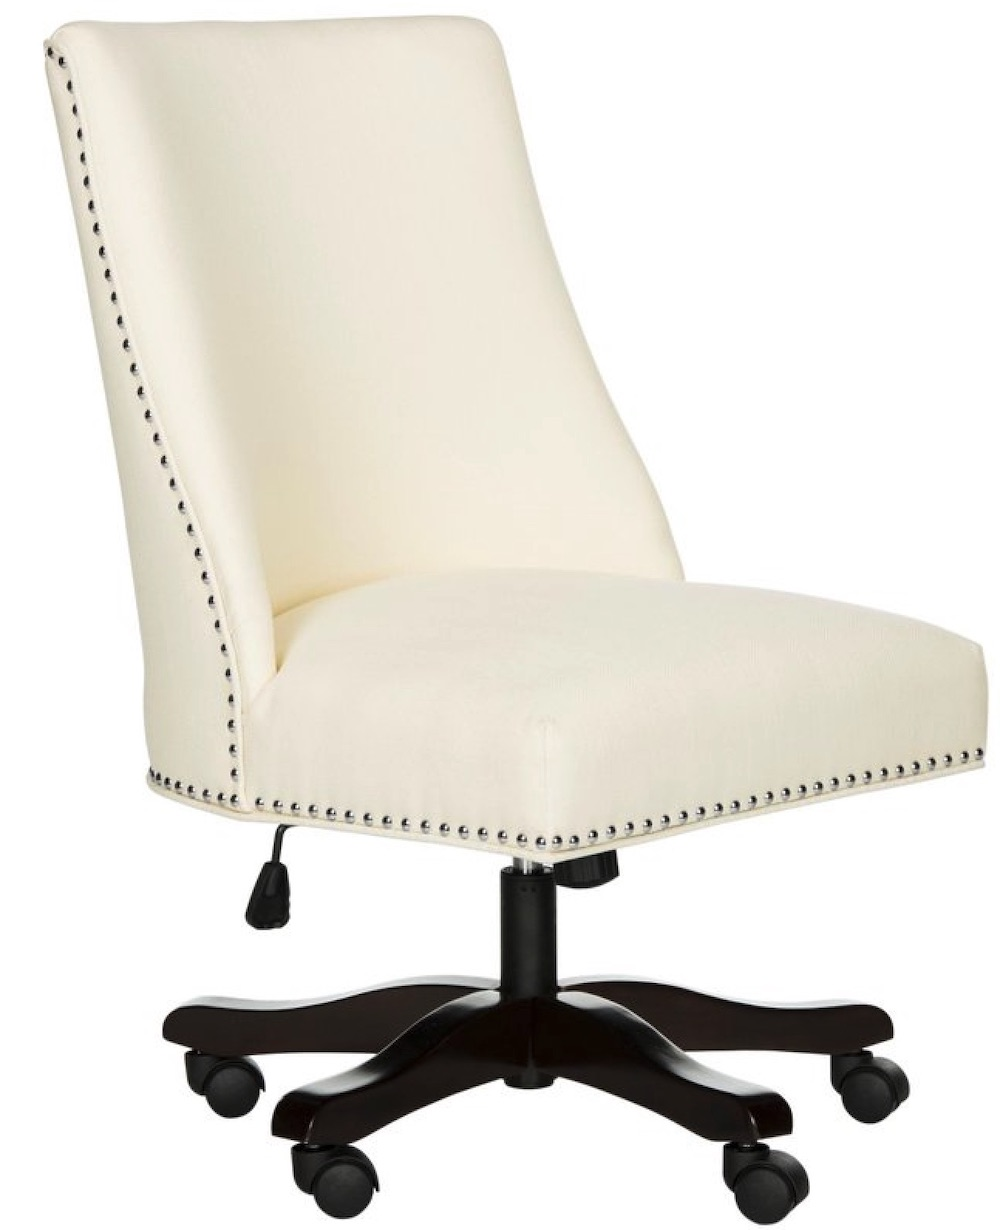 Chairs for Your Workspace Ashbaugh Office Chair #DeskChairs #HomeOffice #HomeOfficeDeskChairs #OfficeChairs #Decor #FarmhouseDecor #WorkingMoms #WorkFromHome